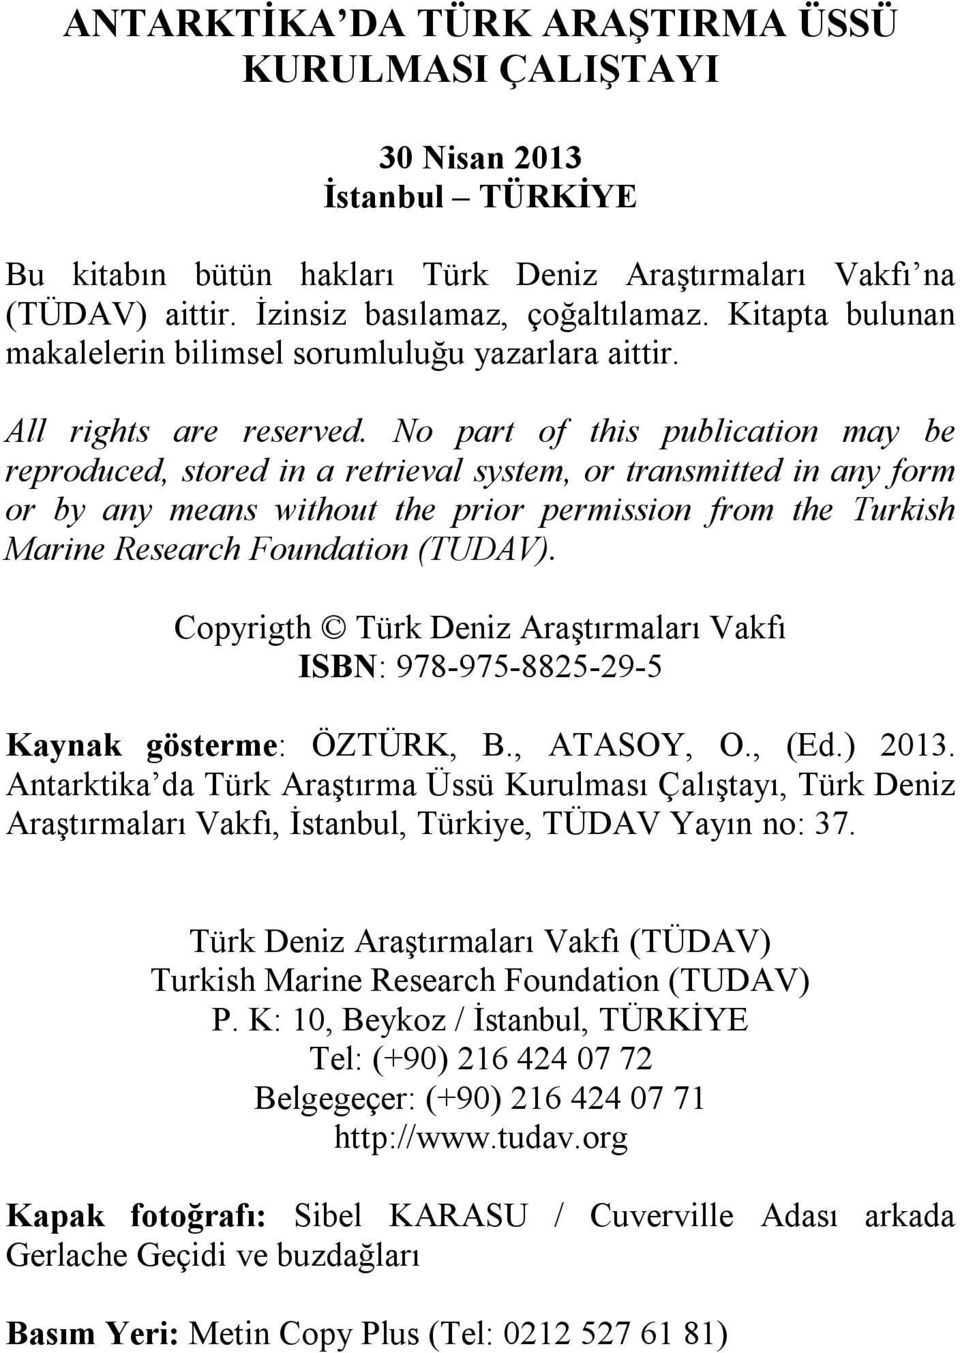 No part of this publication may be reproduced, stored in a retrieval system, or transmitted in any form or by any means without the prior permission from the Turkish Marine Research Foundation